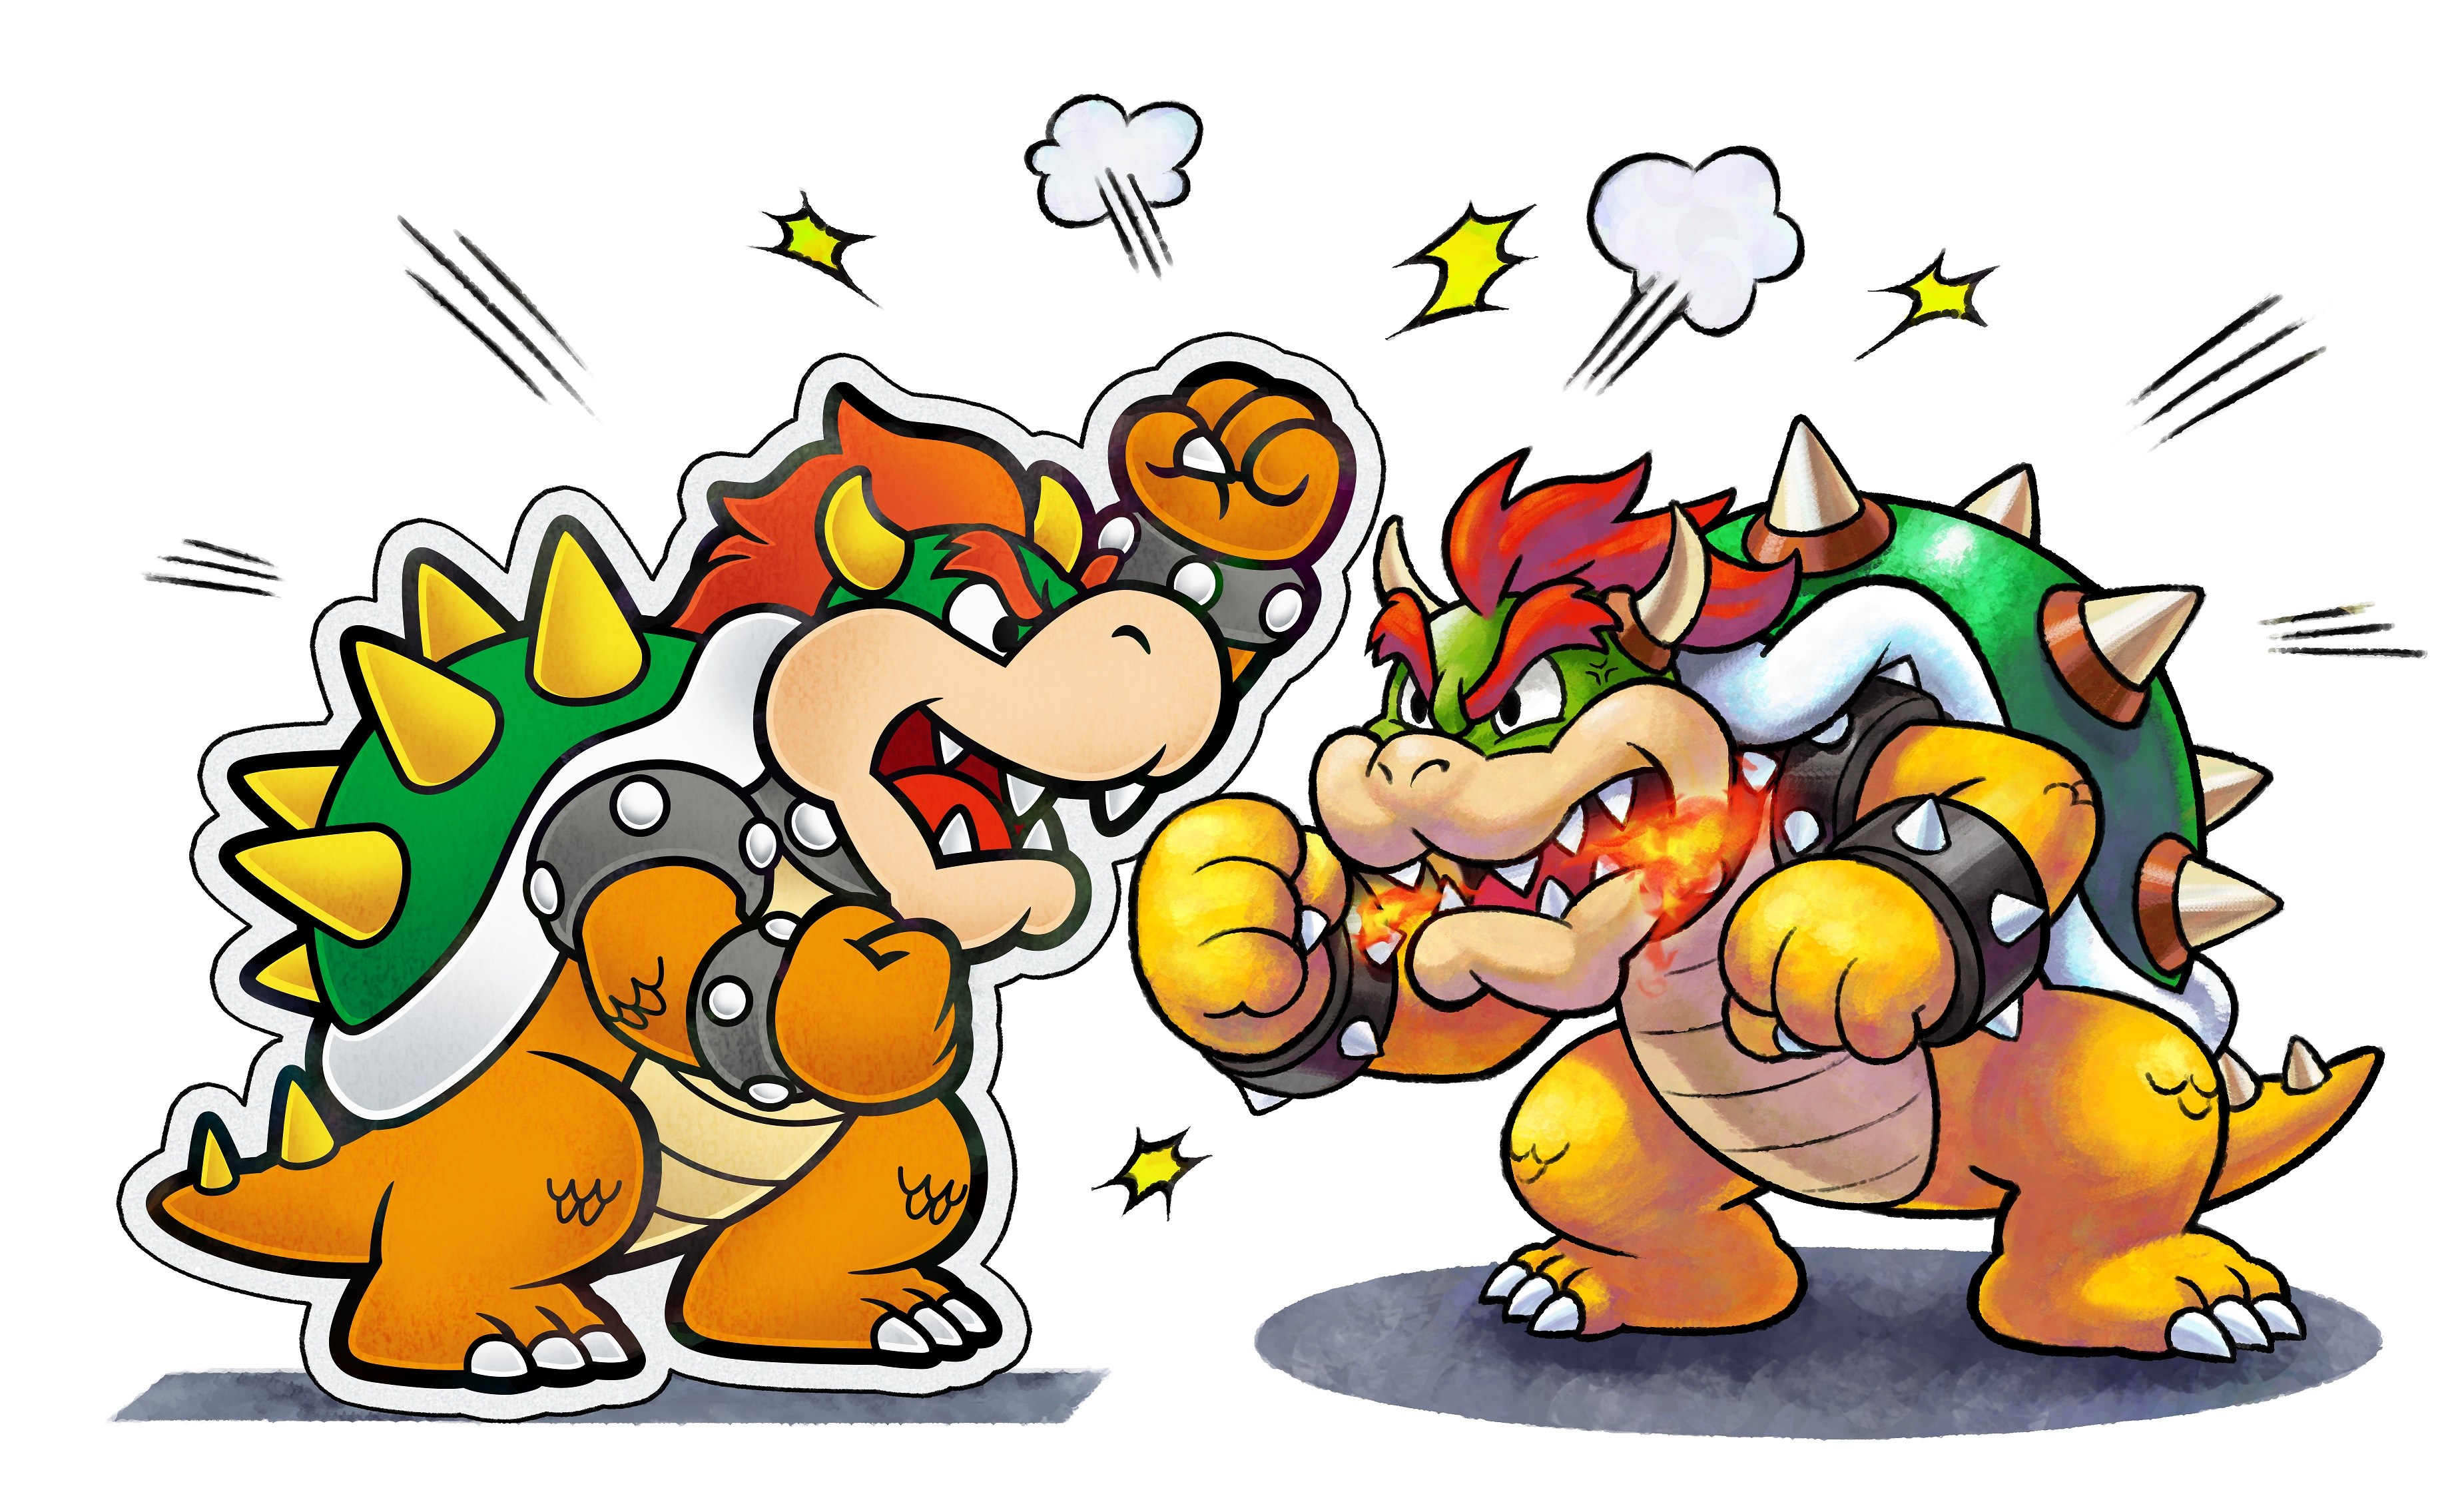 Bower meet...Paper Bowser. Get ready for these two to fight...a bunch